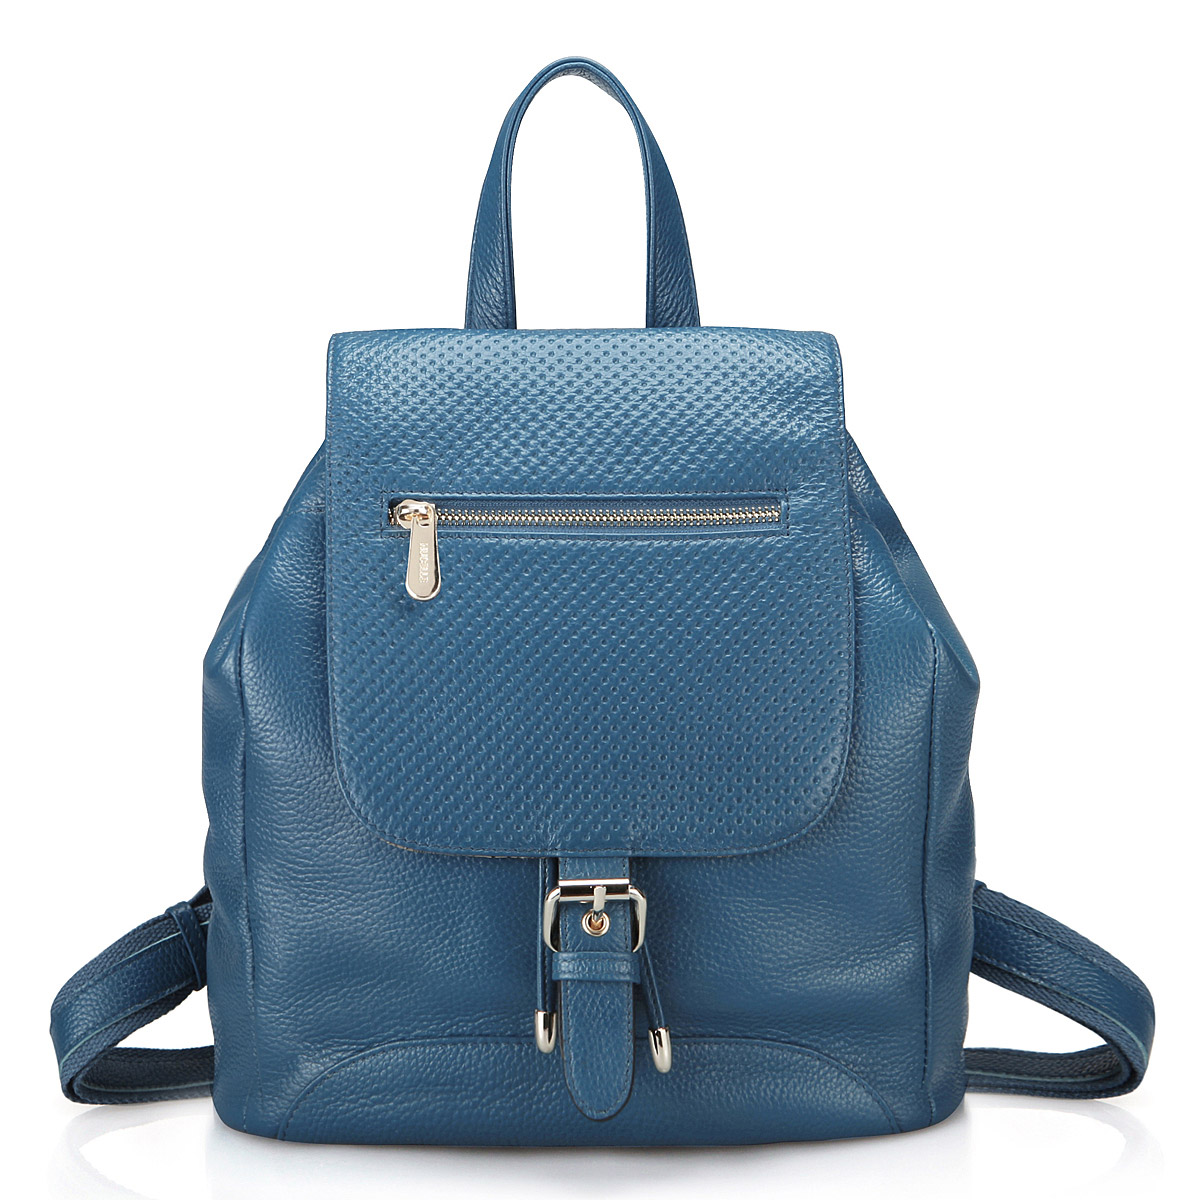 Blue Leather Backpack NgjTOeDS